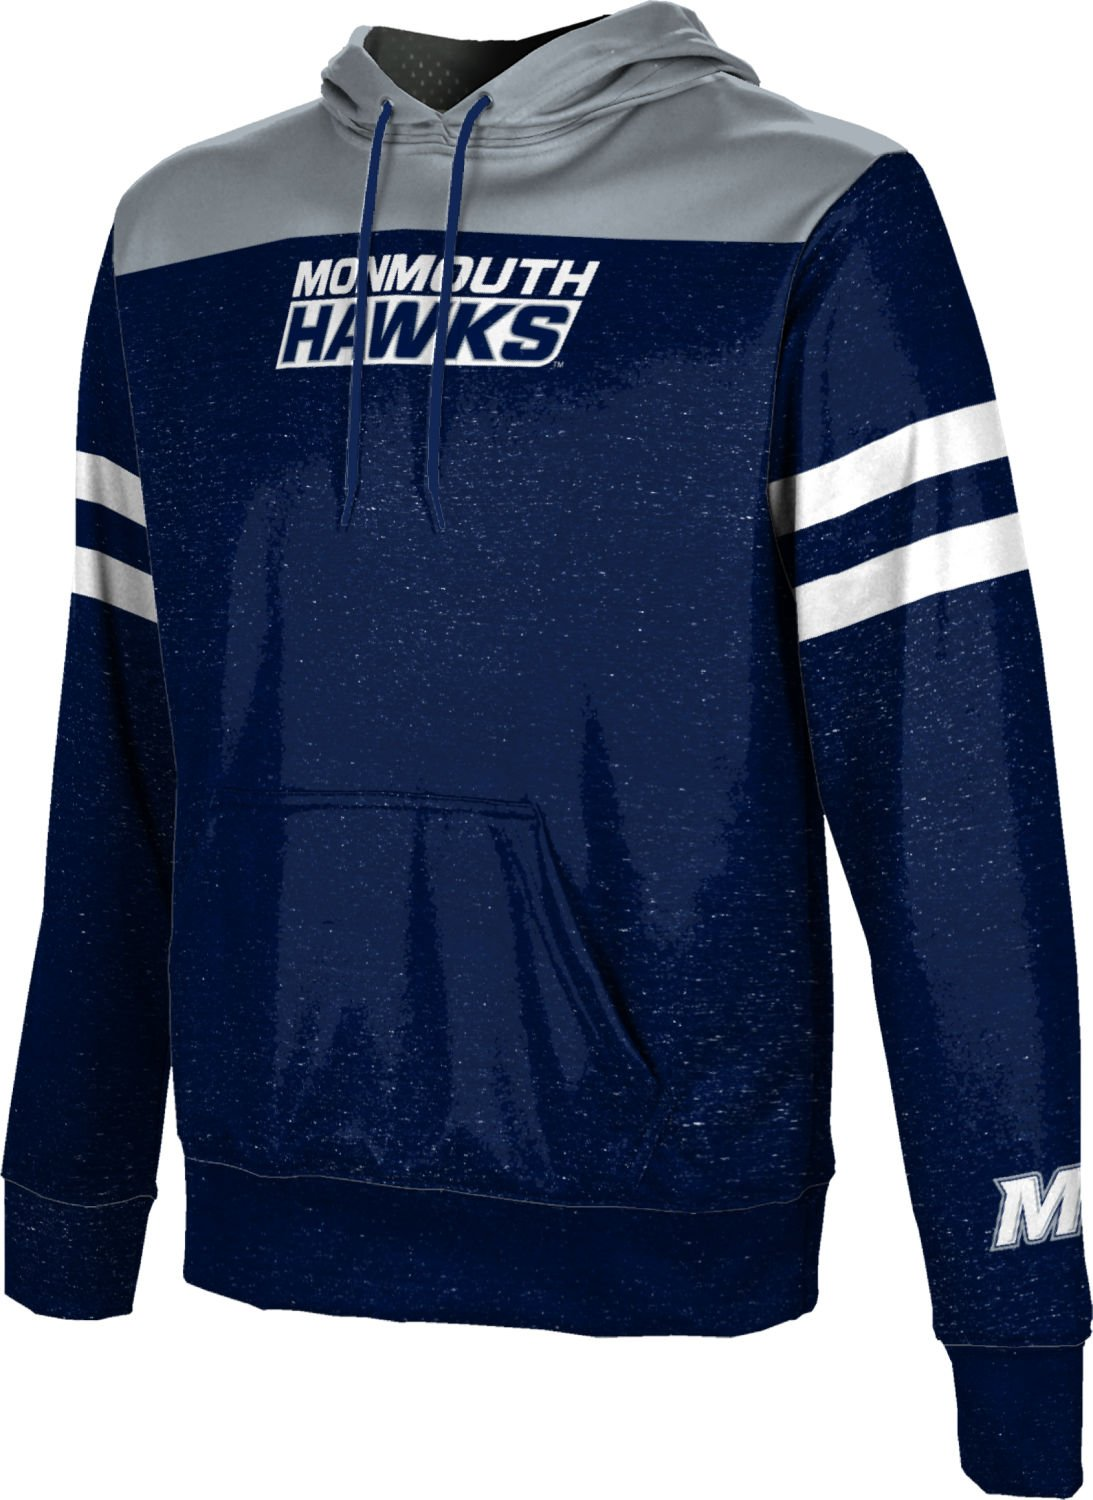 Monmouth University Boys' Pullover Hoodie, School Spirit Sweatshirt (Game Time) FEA9 Blue and Gray